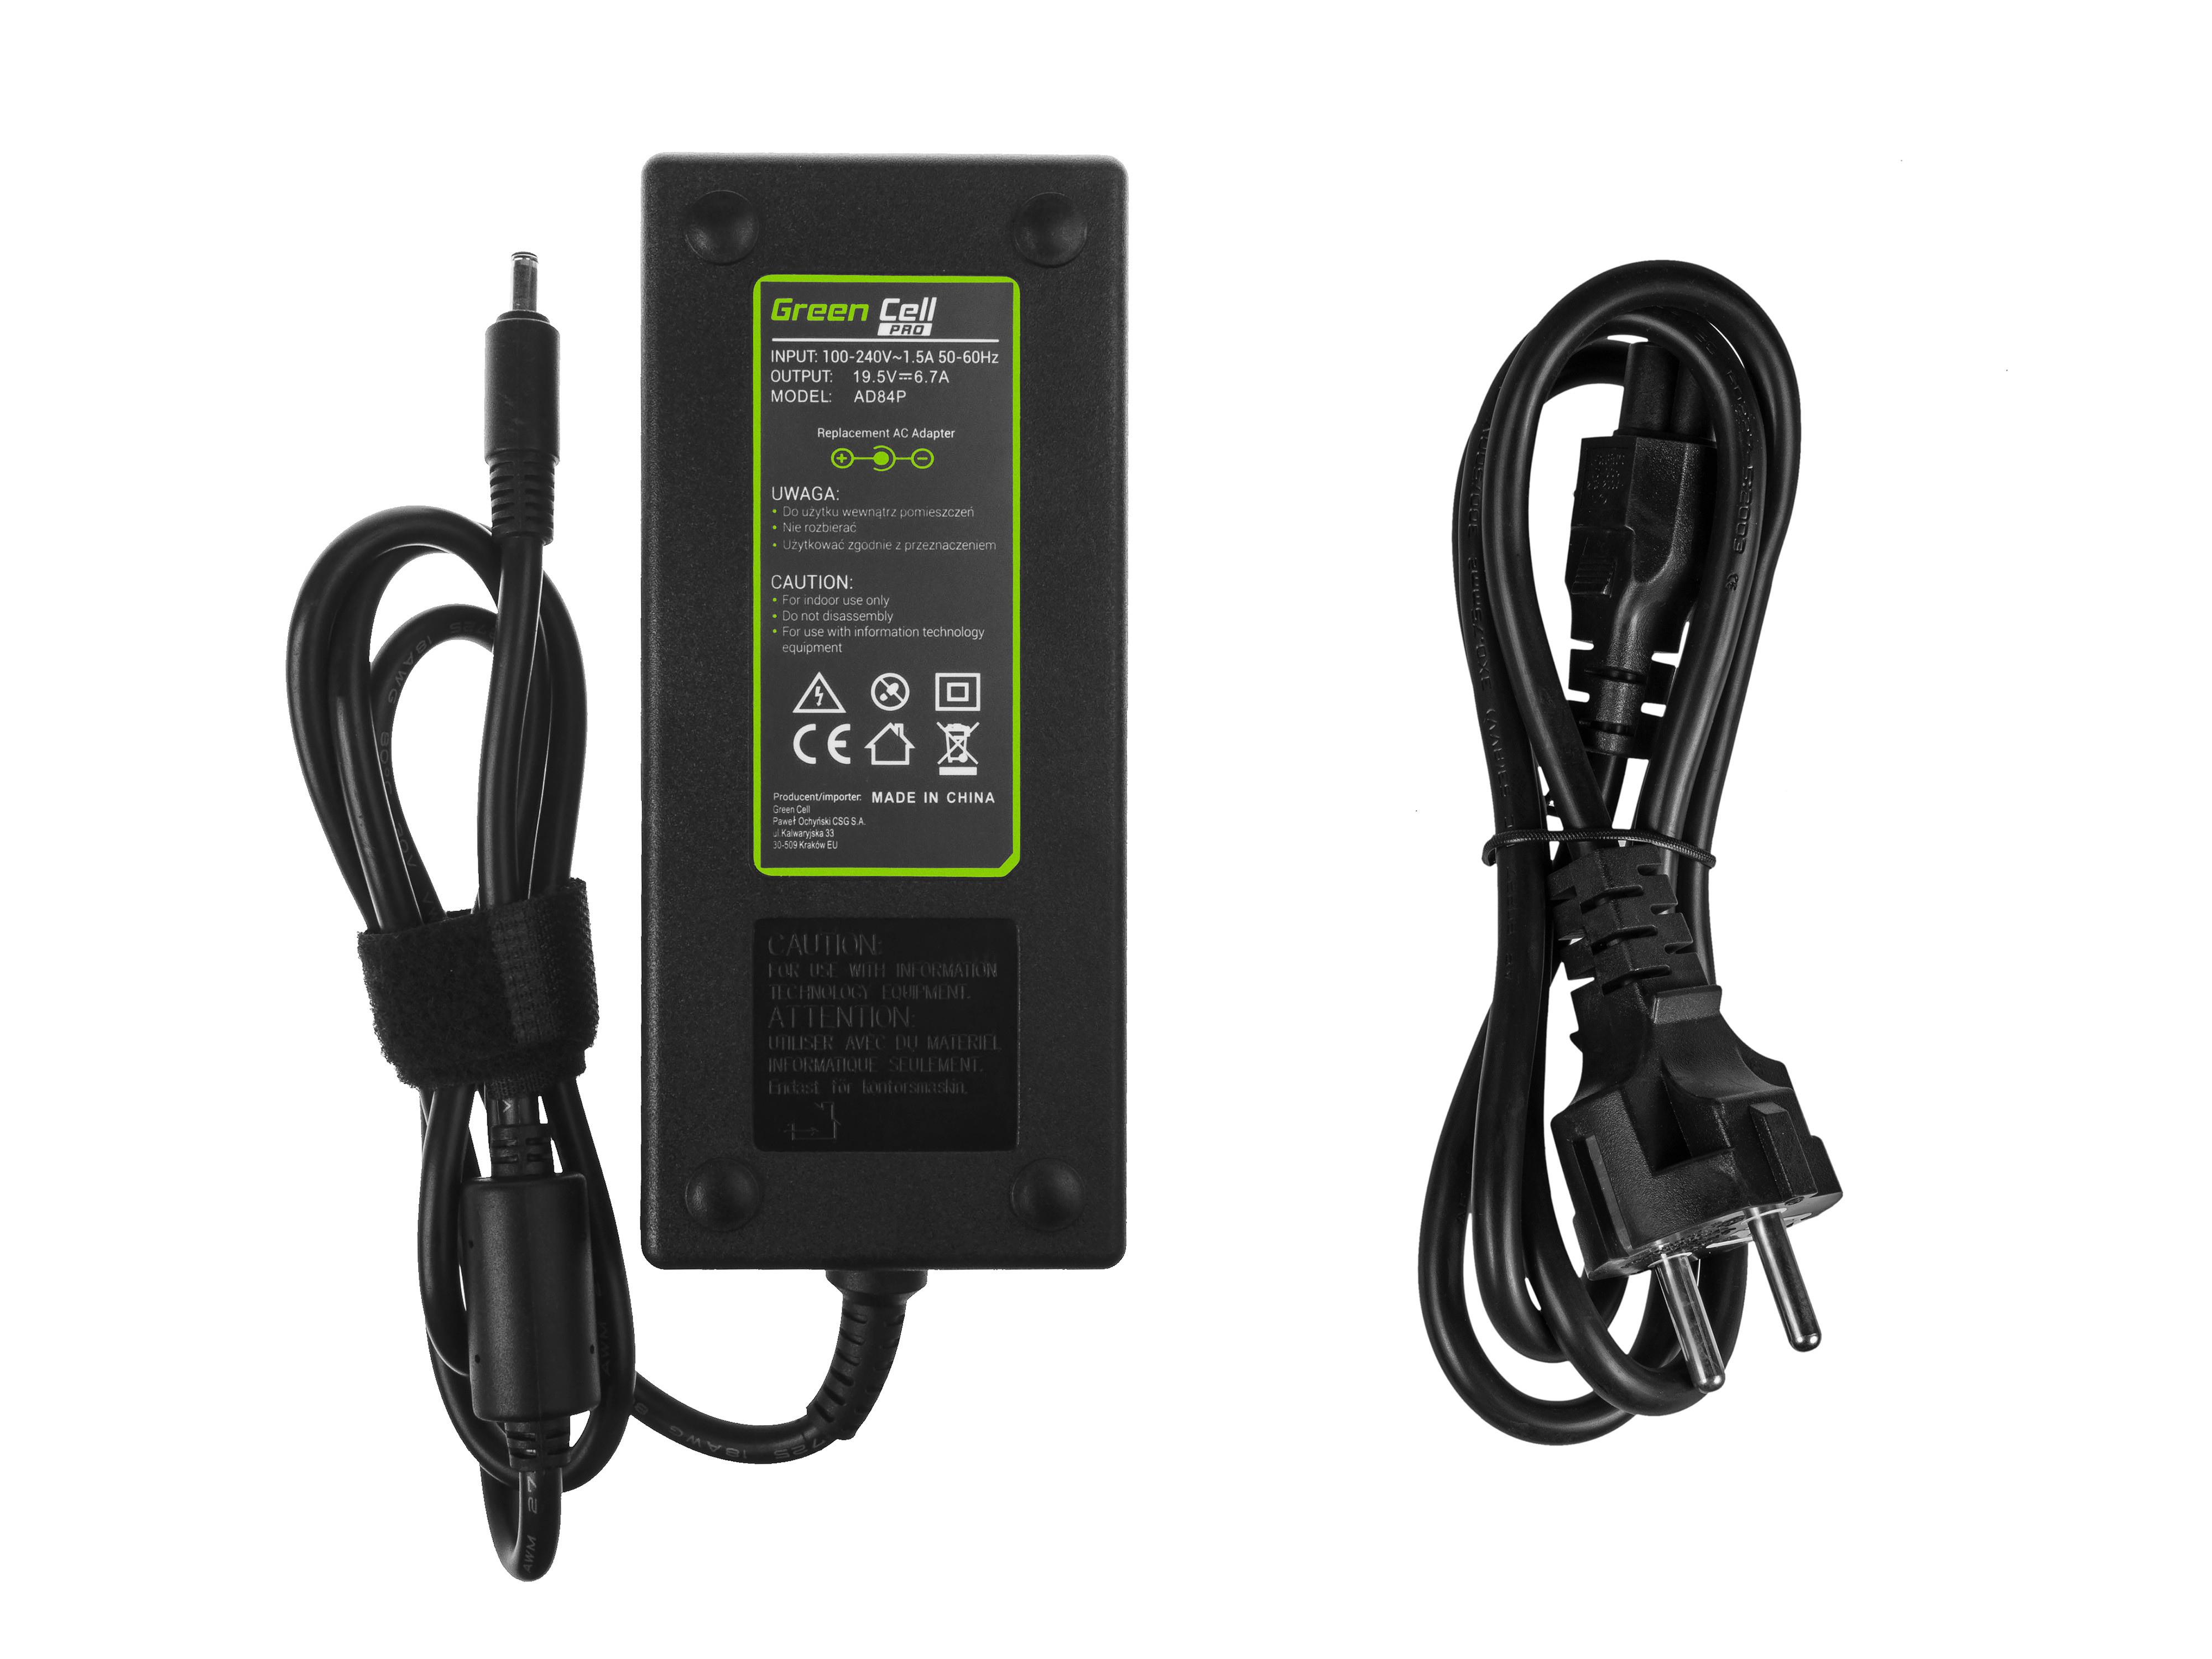 Green Cell PRO Charger  AC Adapter for Dell XPS 15 9530 9550 9560 Precision 15 5510 5520 M3800 19.5V 6.7A 130W